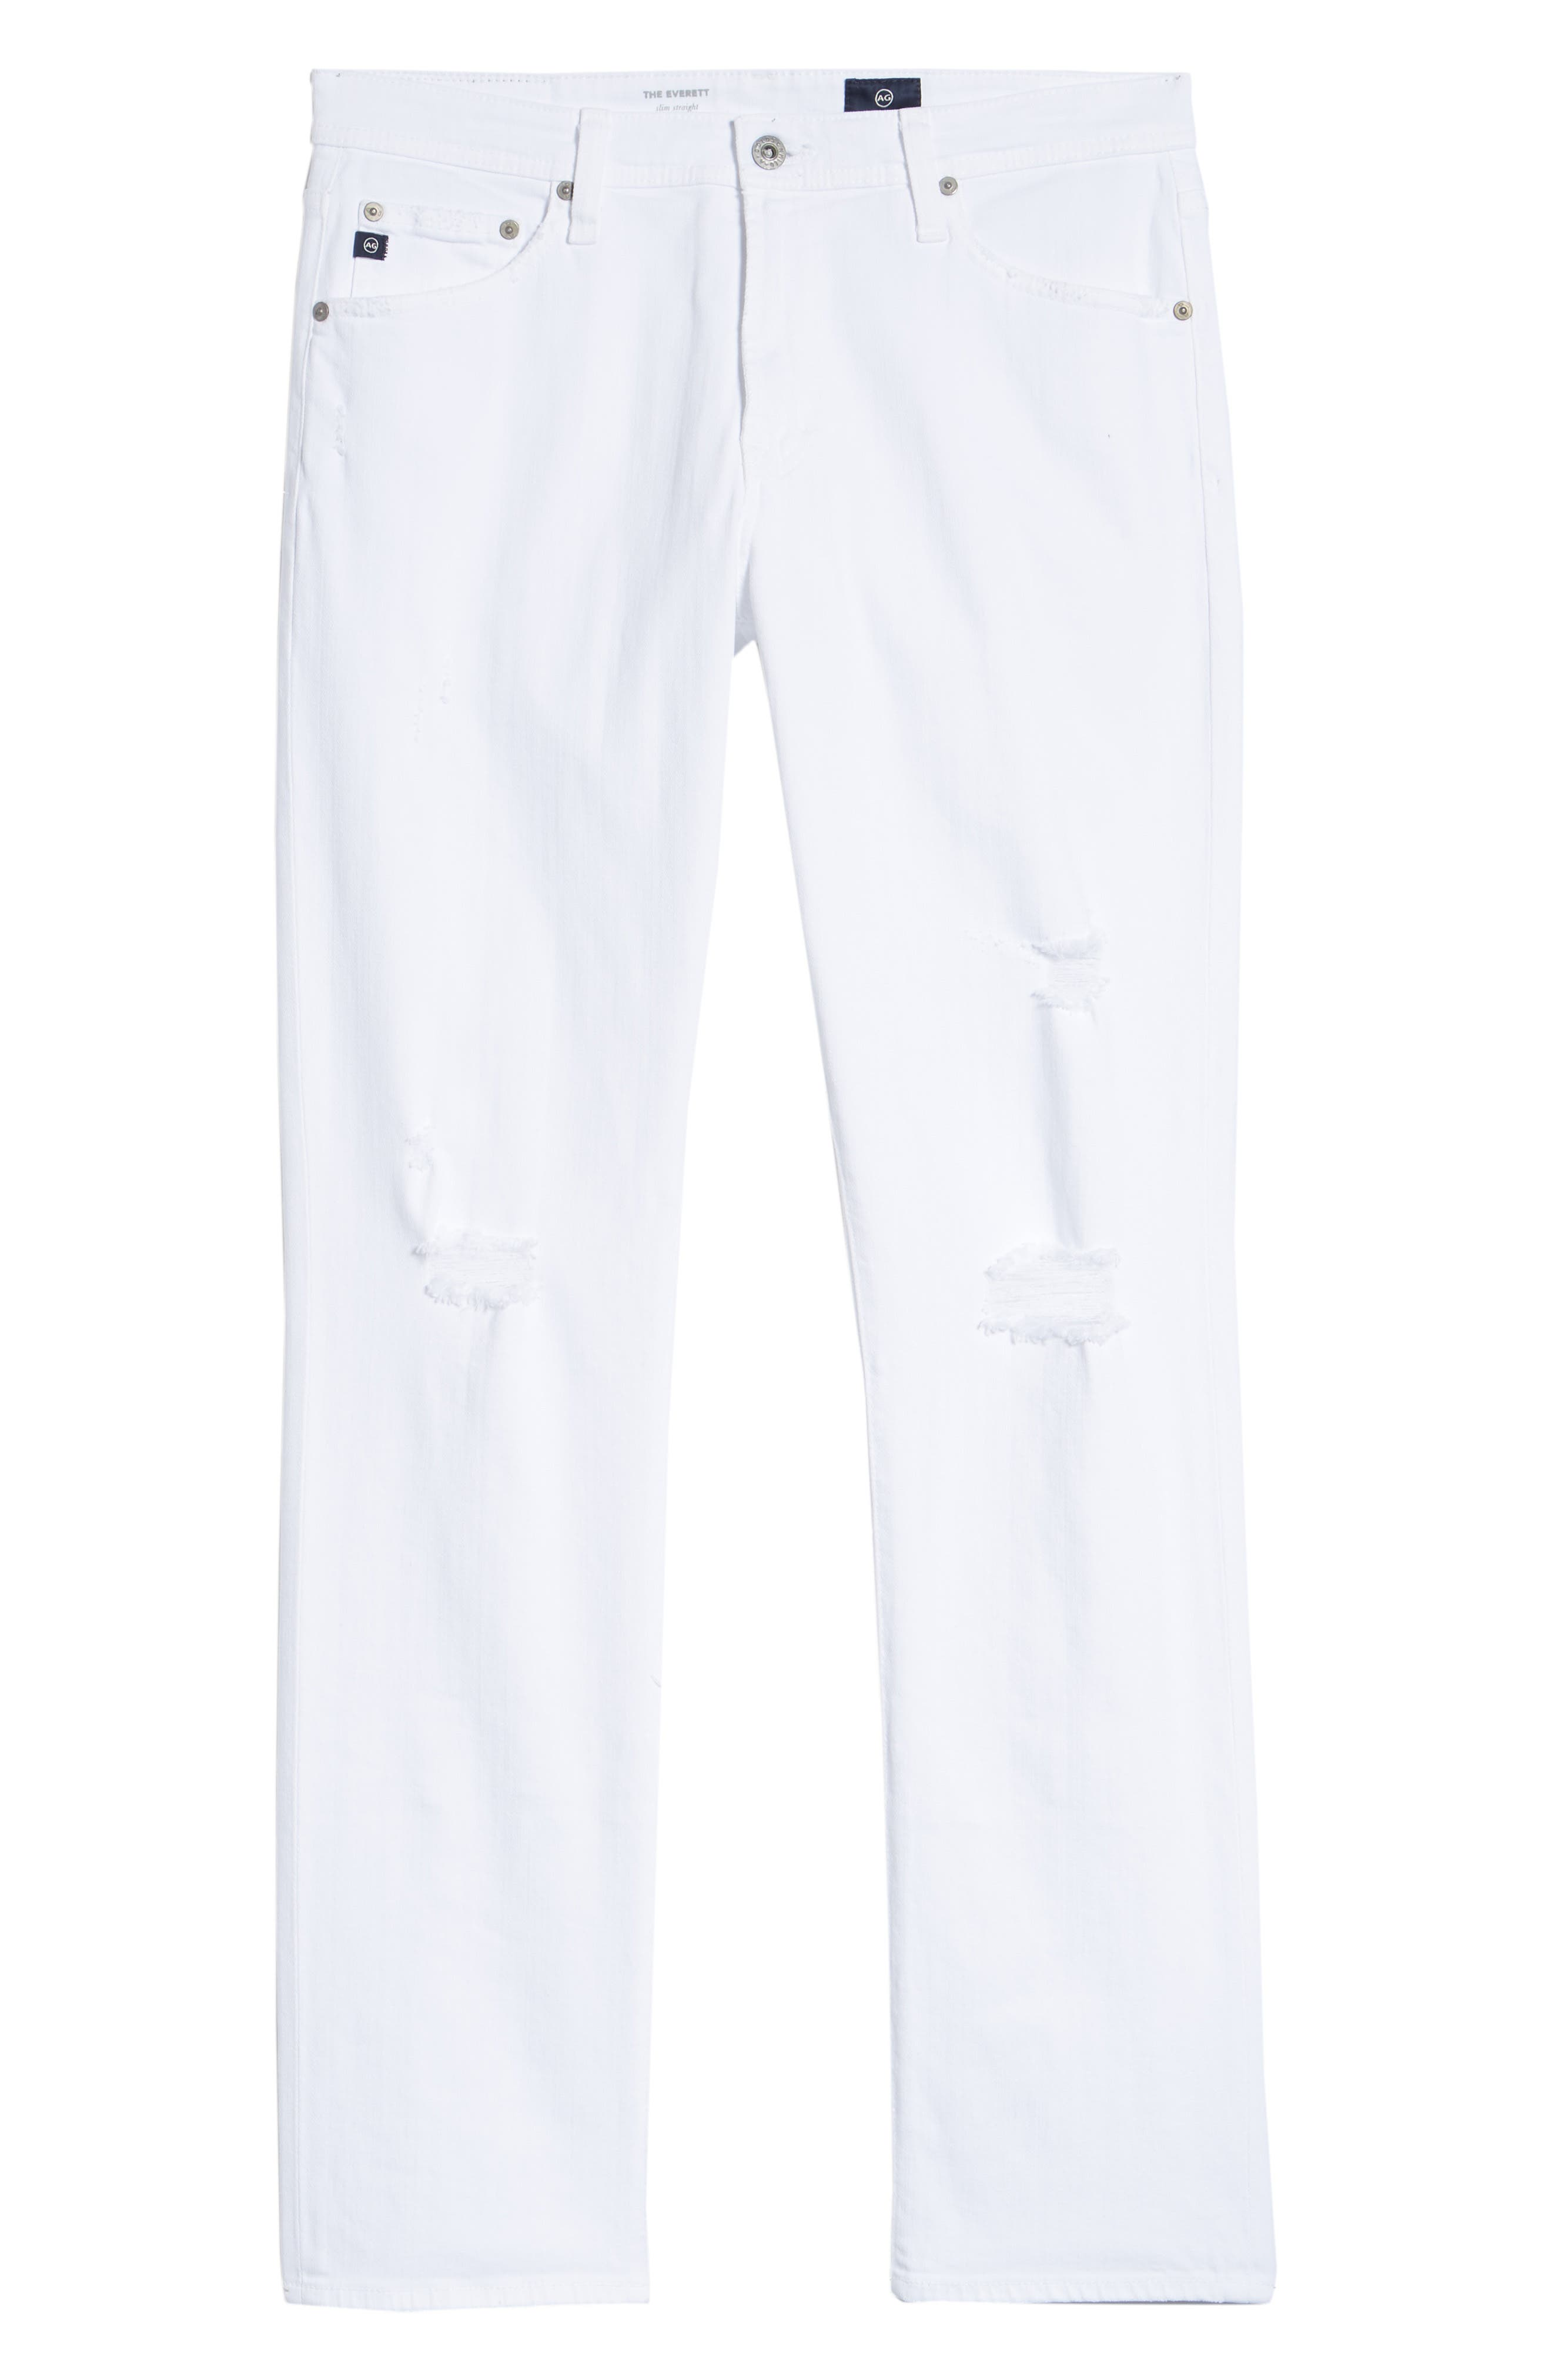 Everett Slim Straight Leg Jeans,                             Alternate thumbnail 6, color,                             White Crash